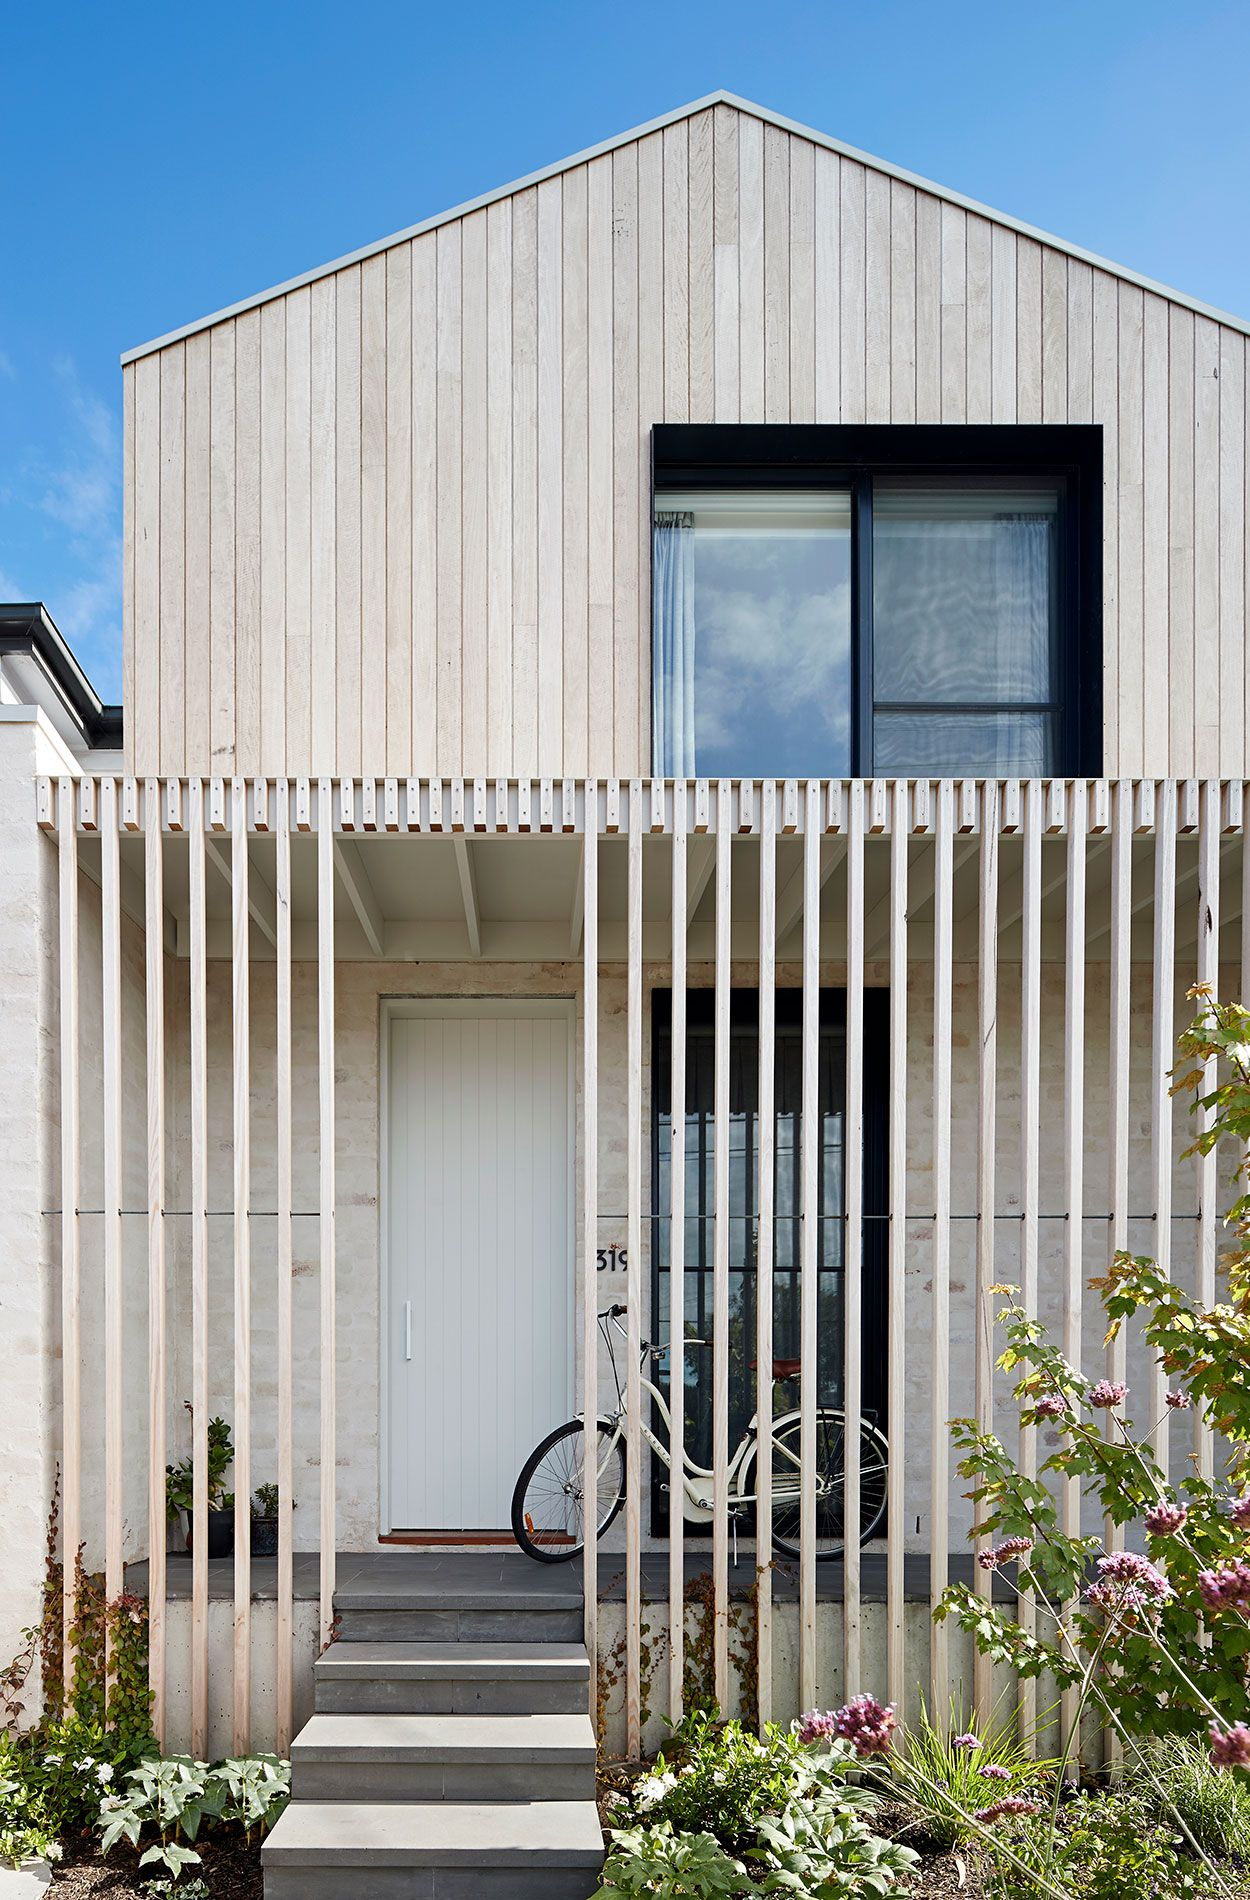 LLLBion House by Tecture  Project Feature  Melbourne VIC Australia  12112019